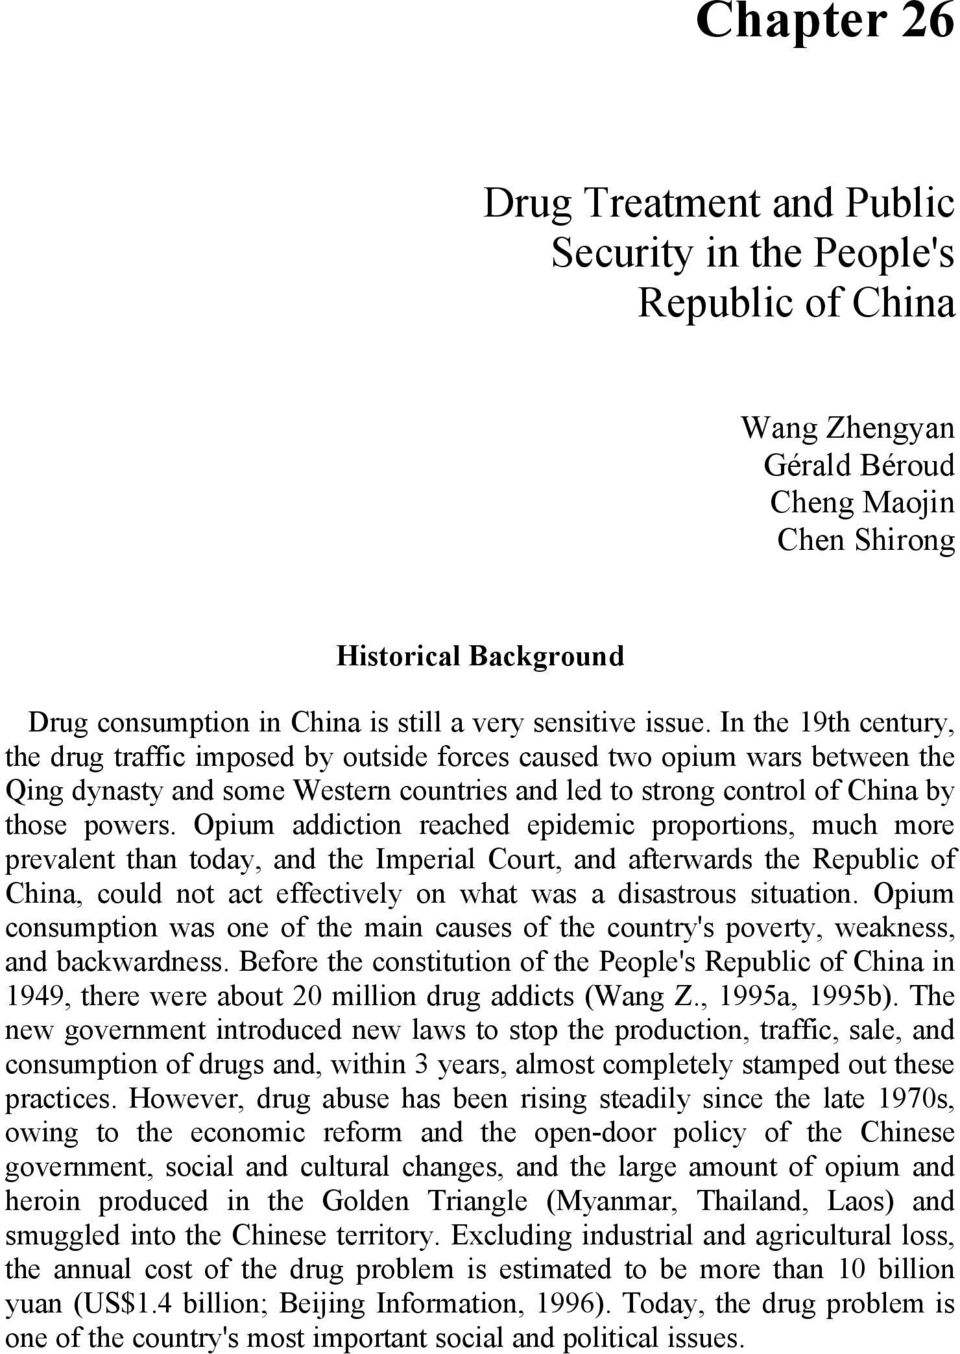 In the 19th century, the drug traffic imposed by outside forces caused two opium wars between the Qing dynasty and some Western countries and led to strong control of China by those powers.